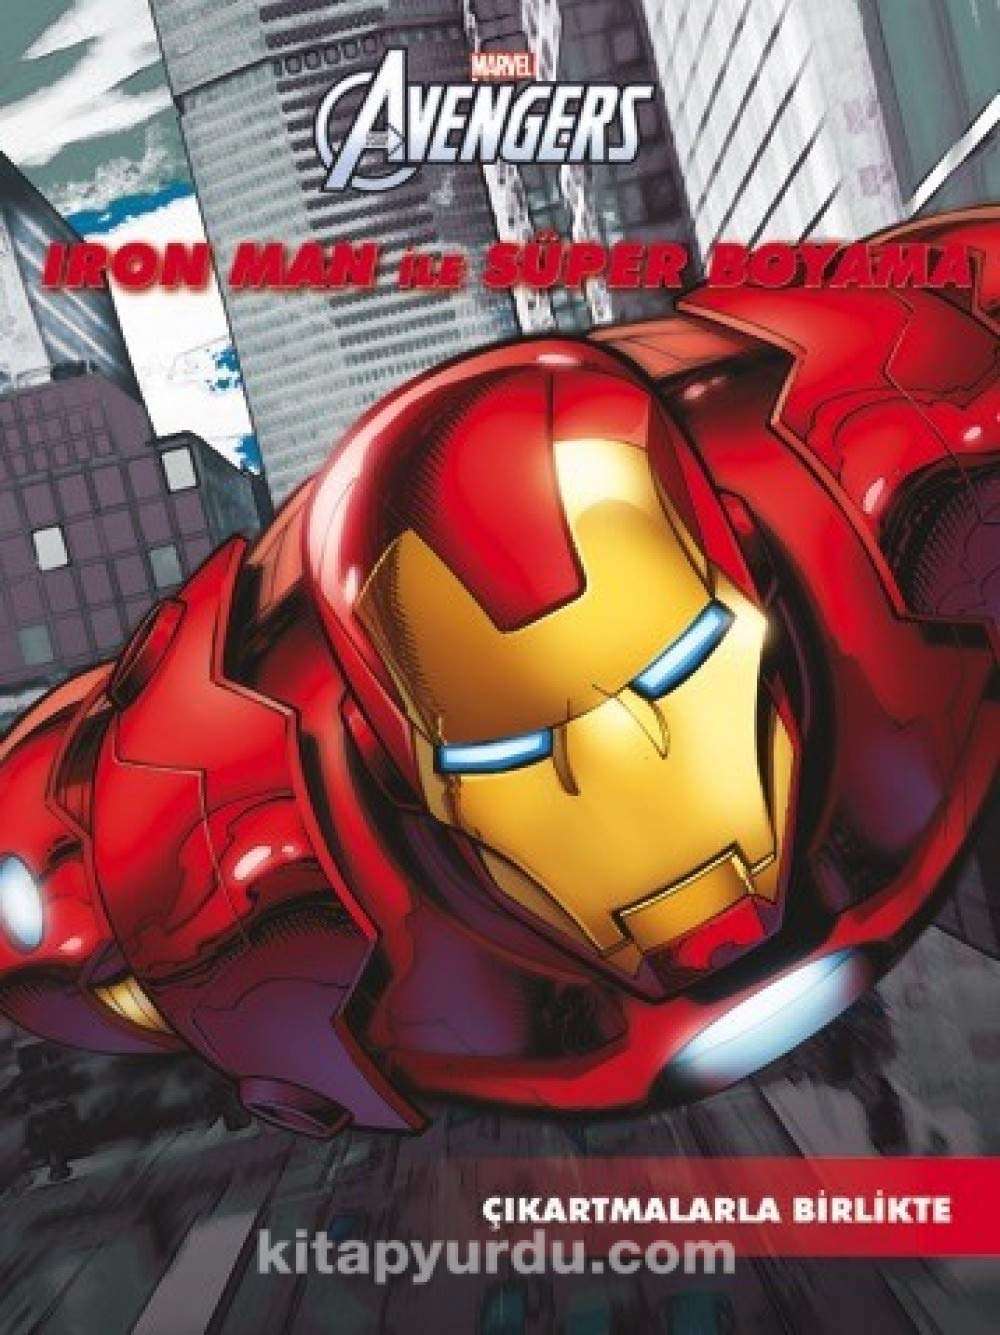 Marvel Iron Man Ile Super Boyama 9786053337782 Amazoncom Books